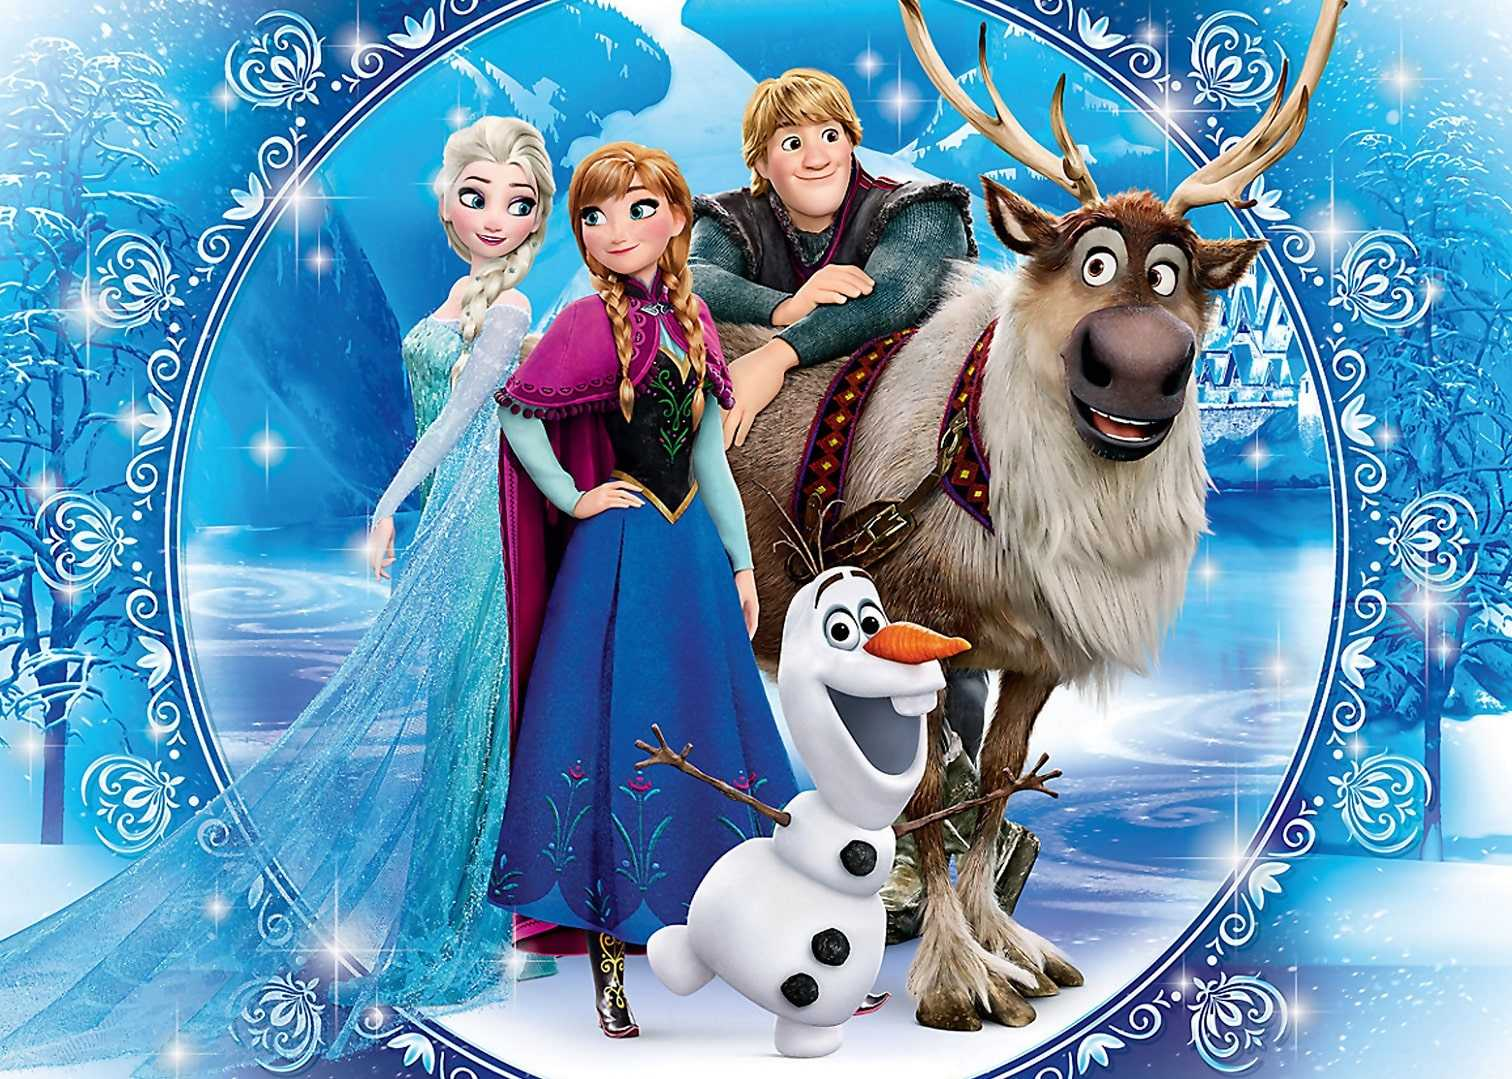 Frozen Wallpapers 3